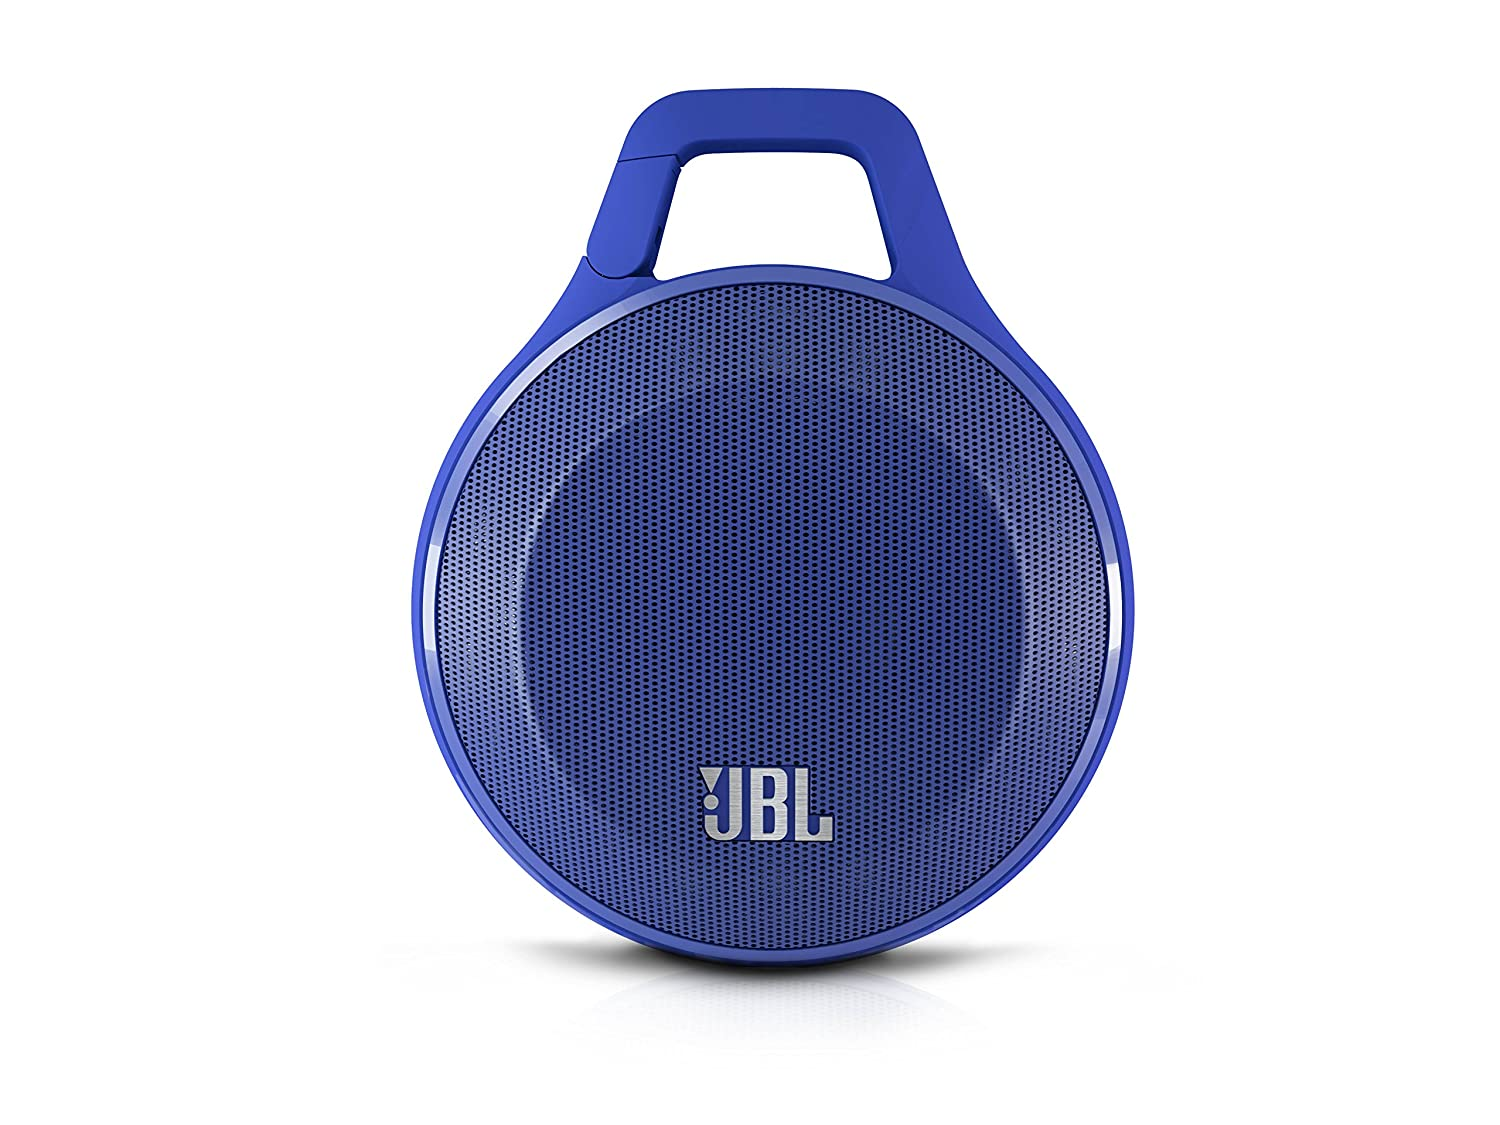 JBL Clip Portable Bluetooth Speaker with Mic Blue